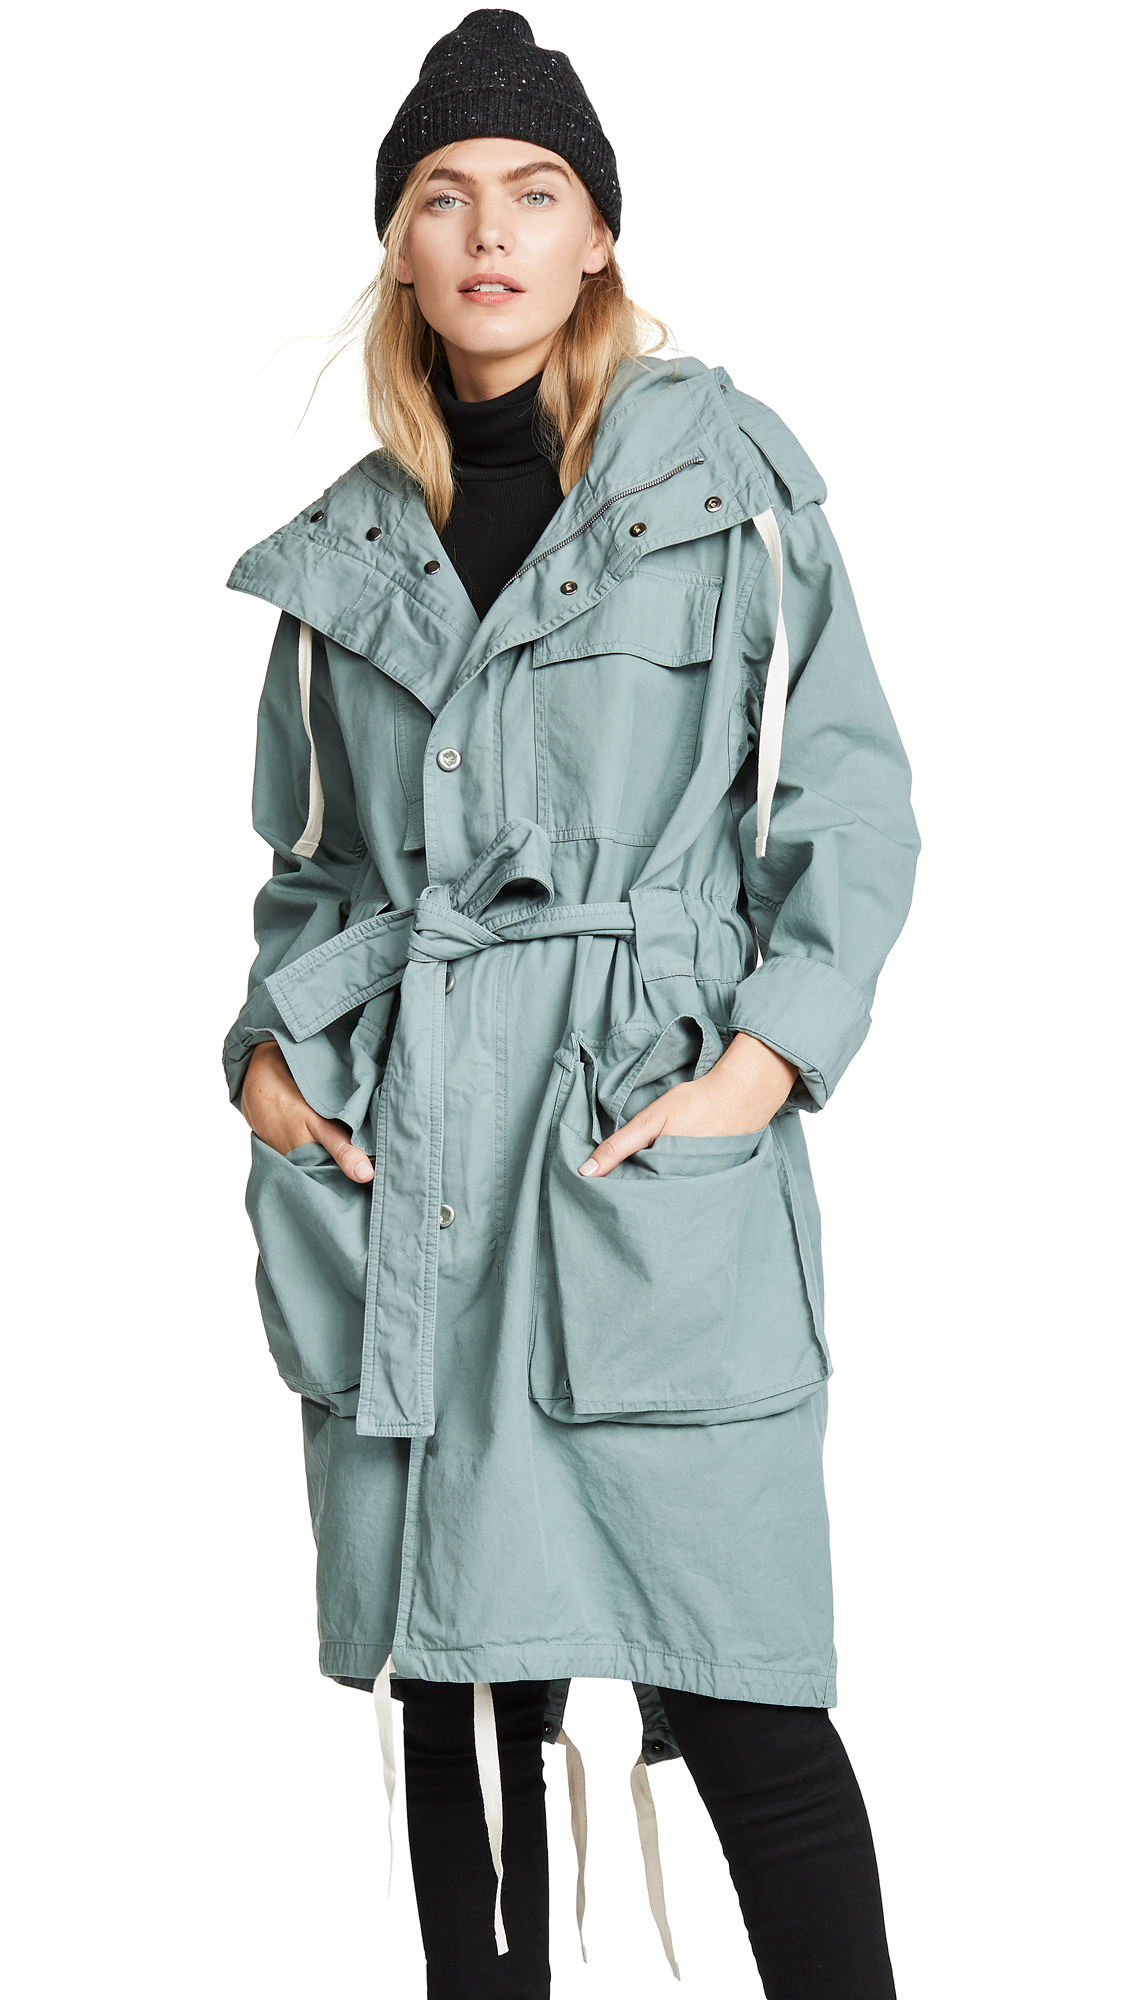 Acne Studios Oline Dyed Chino Coat - Dusty Green